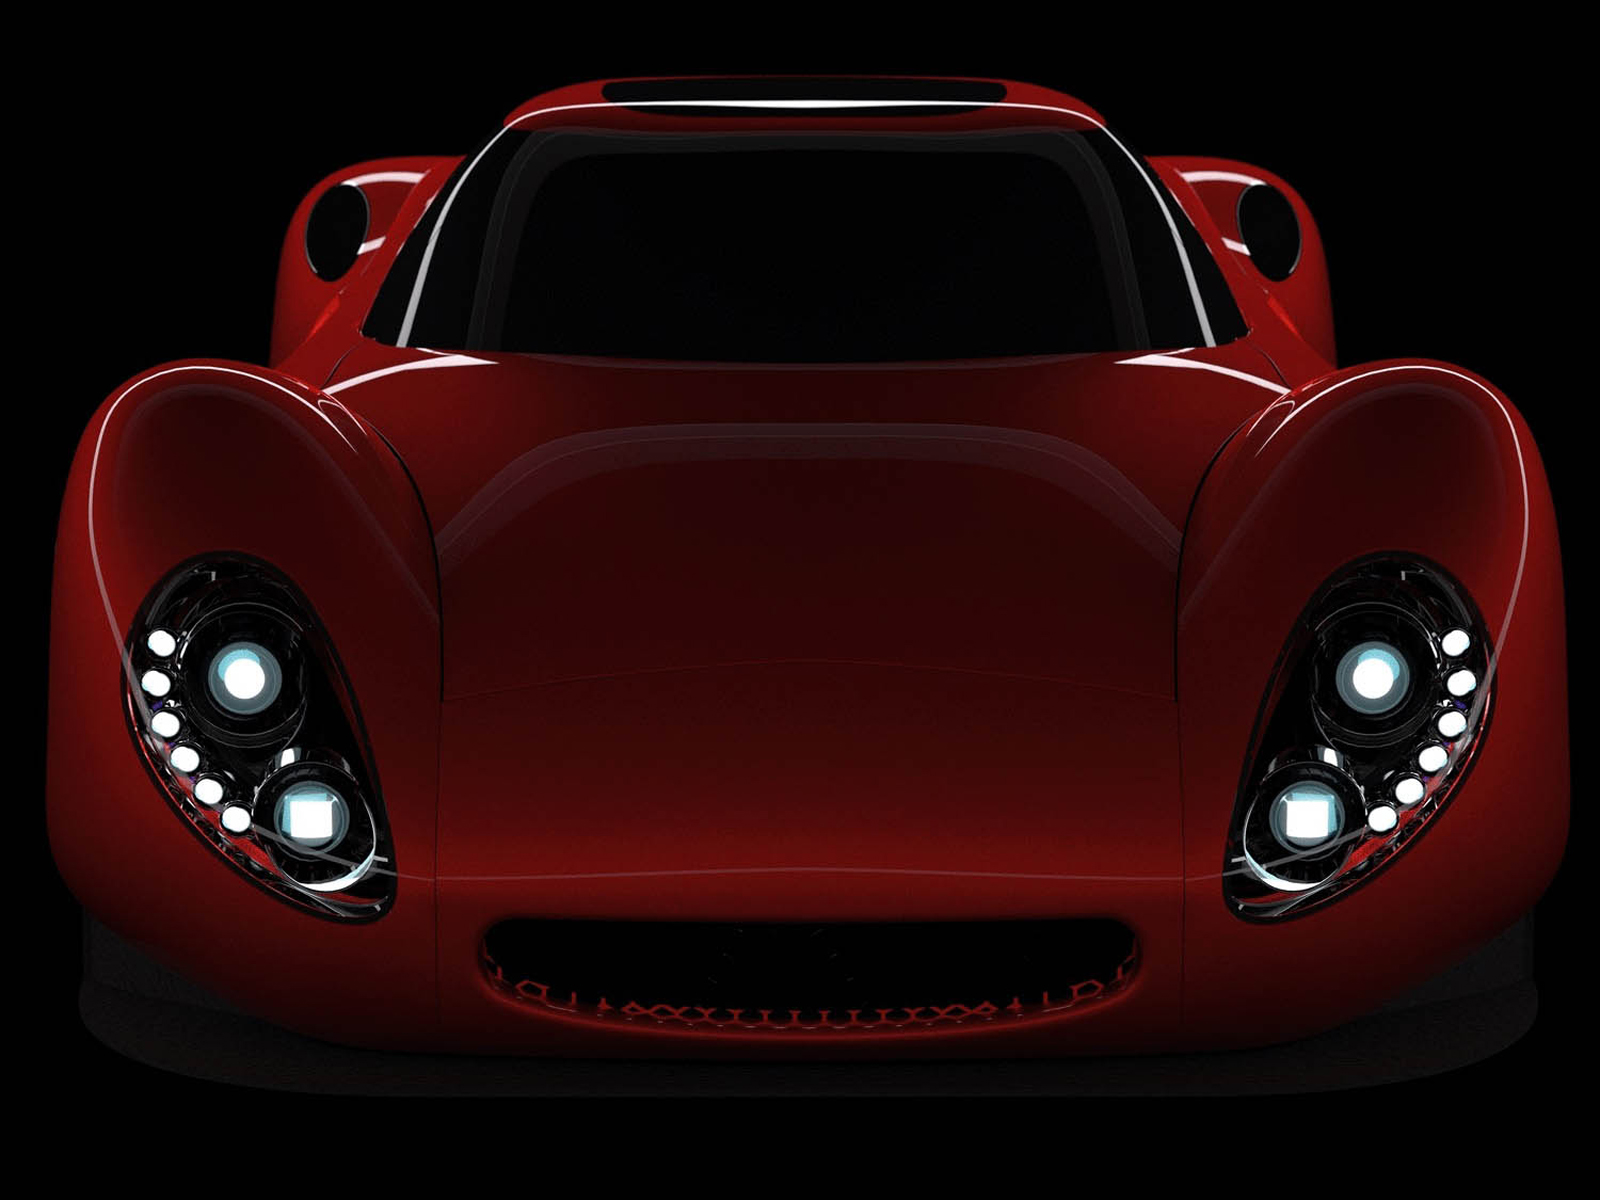 1,800 HP Corbellati Missile Hopes to Top 310 MPH With 9.0L V8